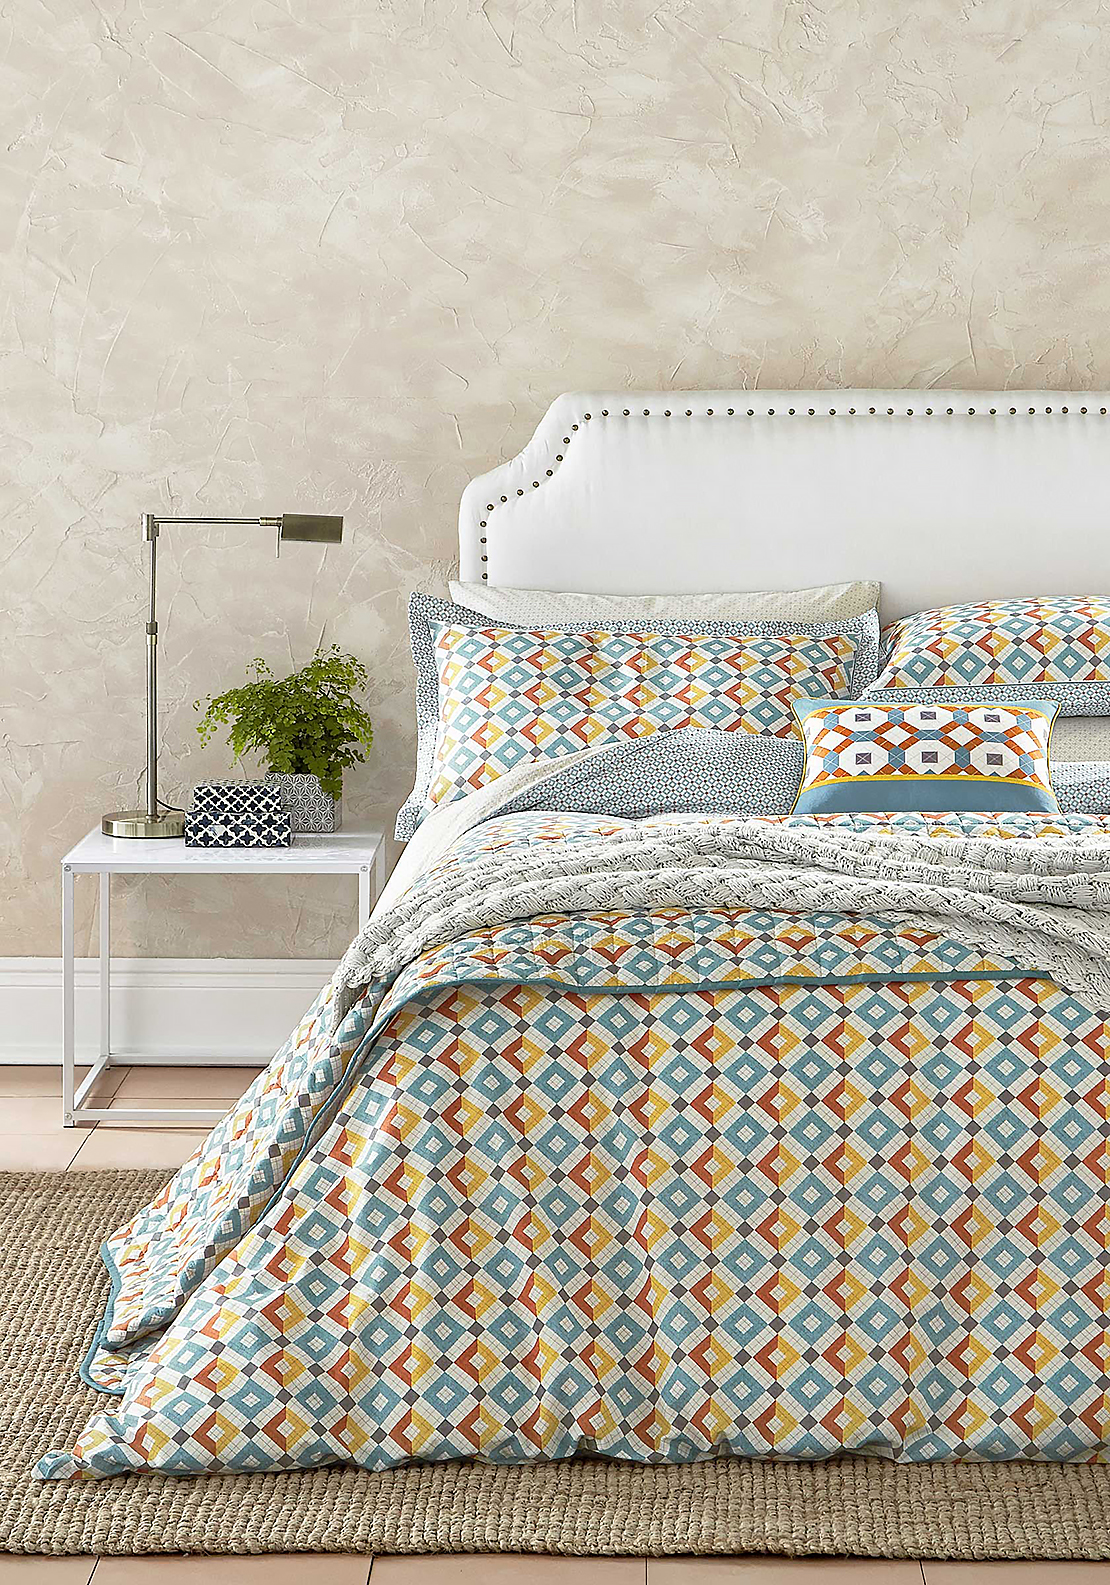 V&A Pompeii Graphic Print Duvet Cover Set, Multi-Coloured